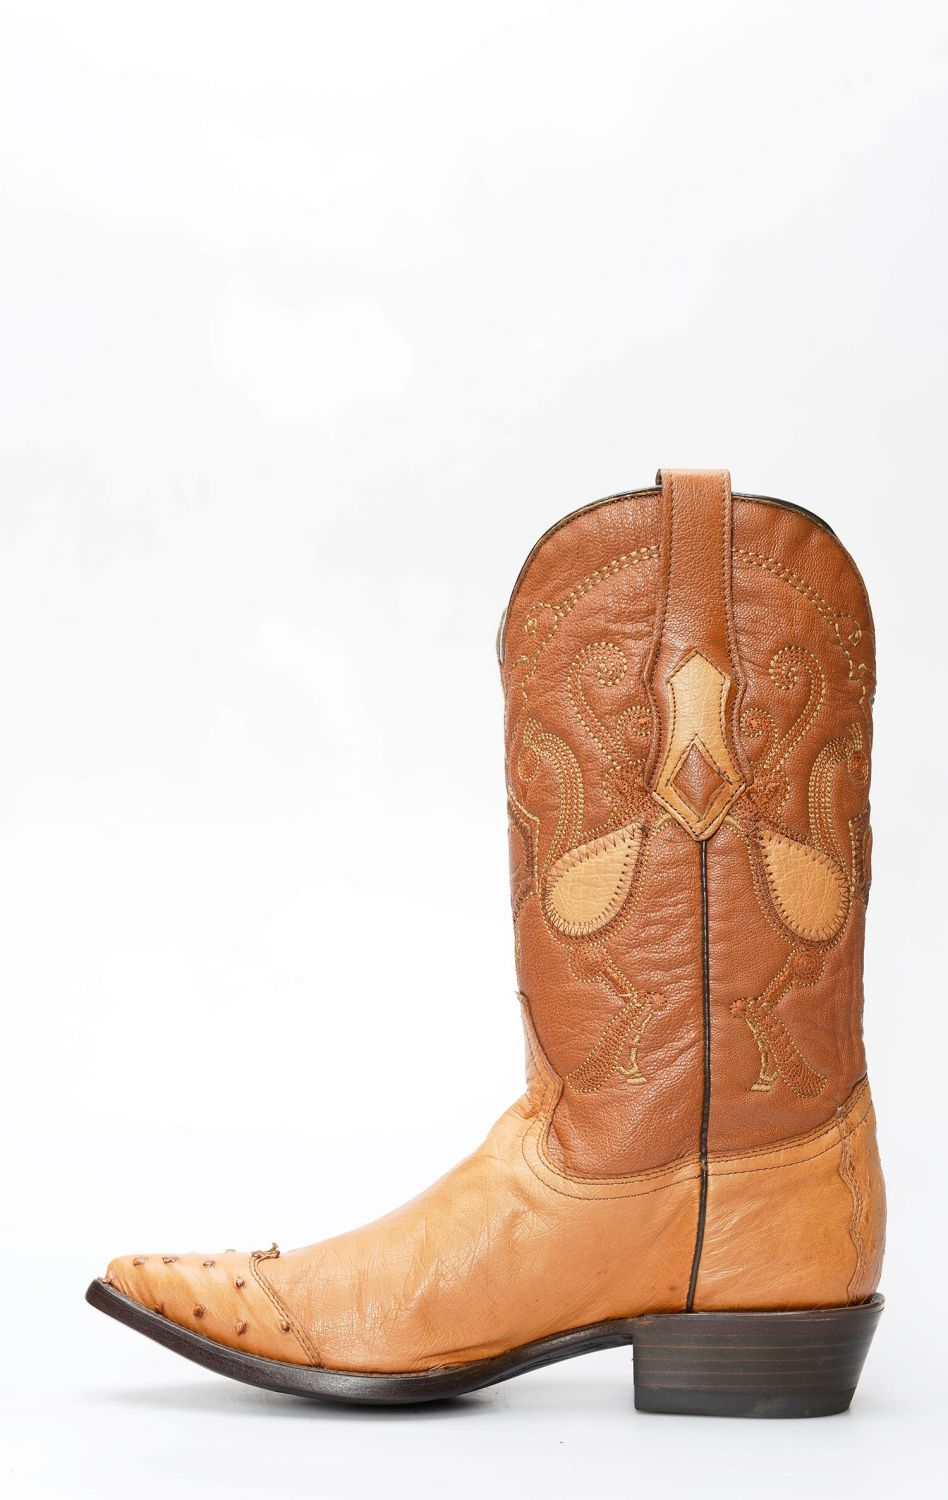 461f3ded2cf Cuadra boots in ostrich belly with honey toe on shoulder | CLAV3PZ2MI